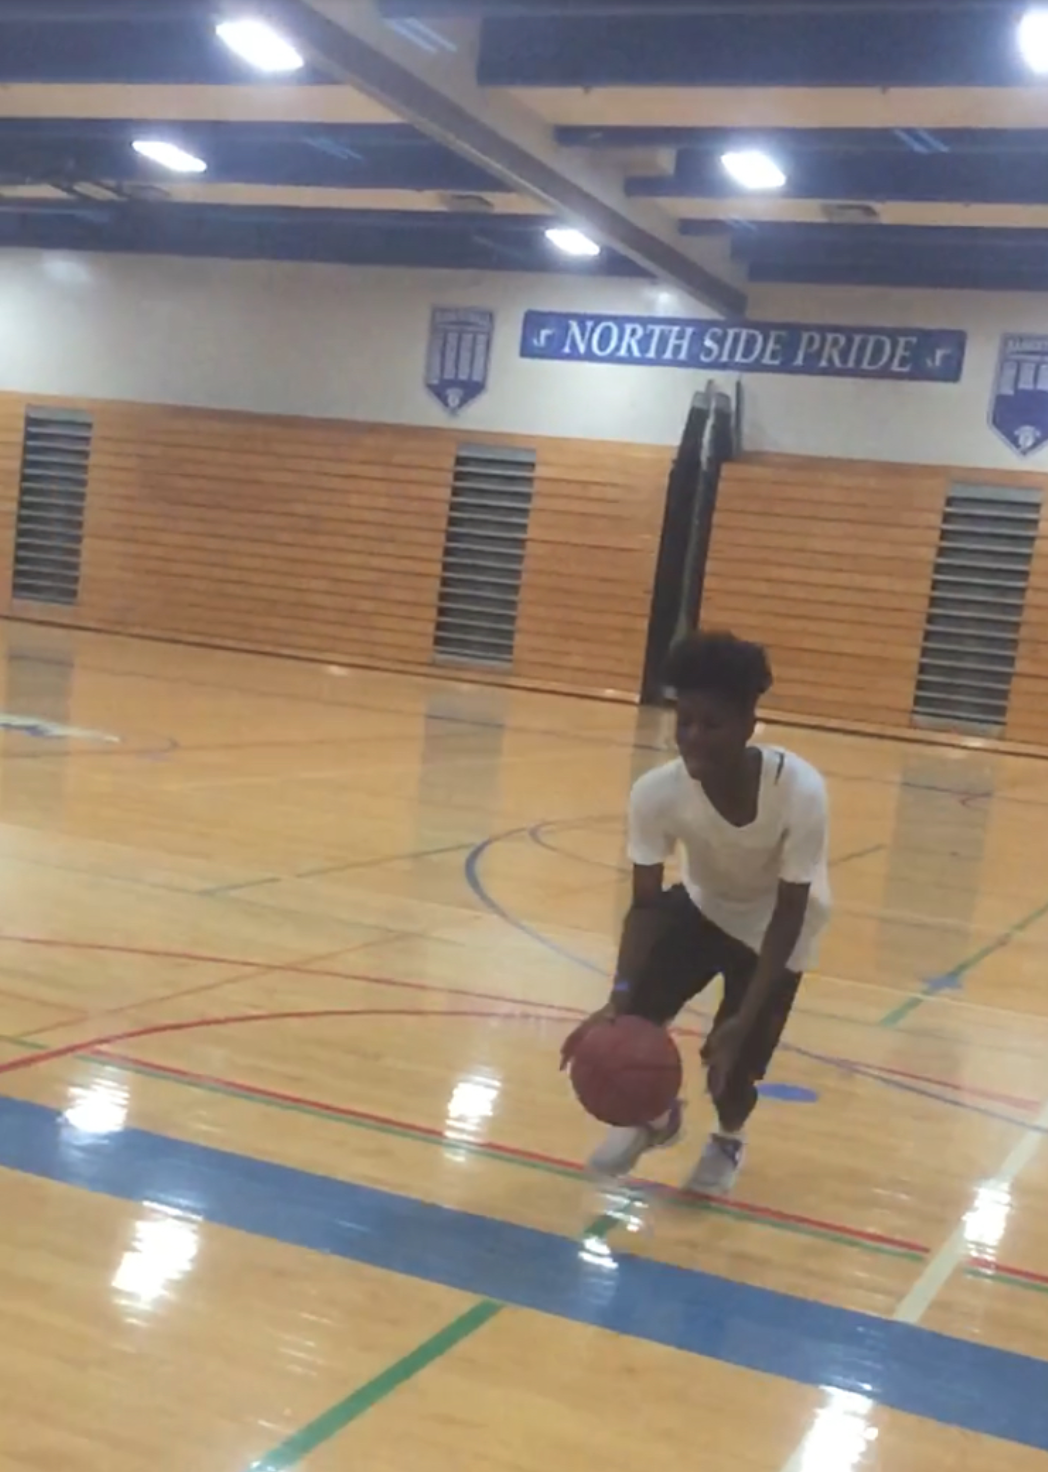 I practice on my own every day of the week but Fridays. That's when I play with my AAU team.This is me working out after school at North High just to get to the next level. Greatness is not going to be handed to you. It's up to you if you are going to put in the work to get to the next level in your future. A reason I work out after school is because I know my family wants the best for me, and I have to put in the work to get them out of the hood.